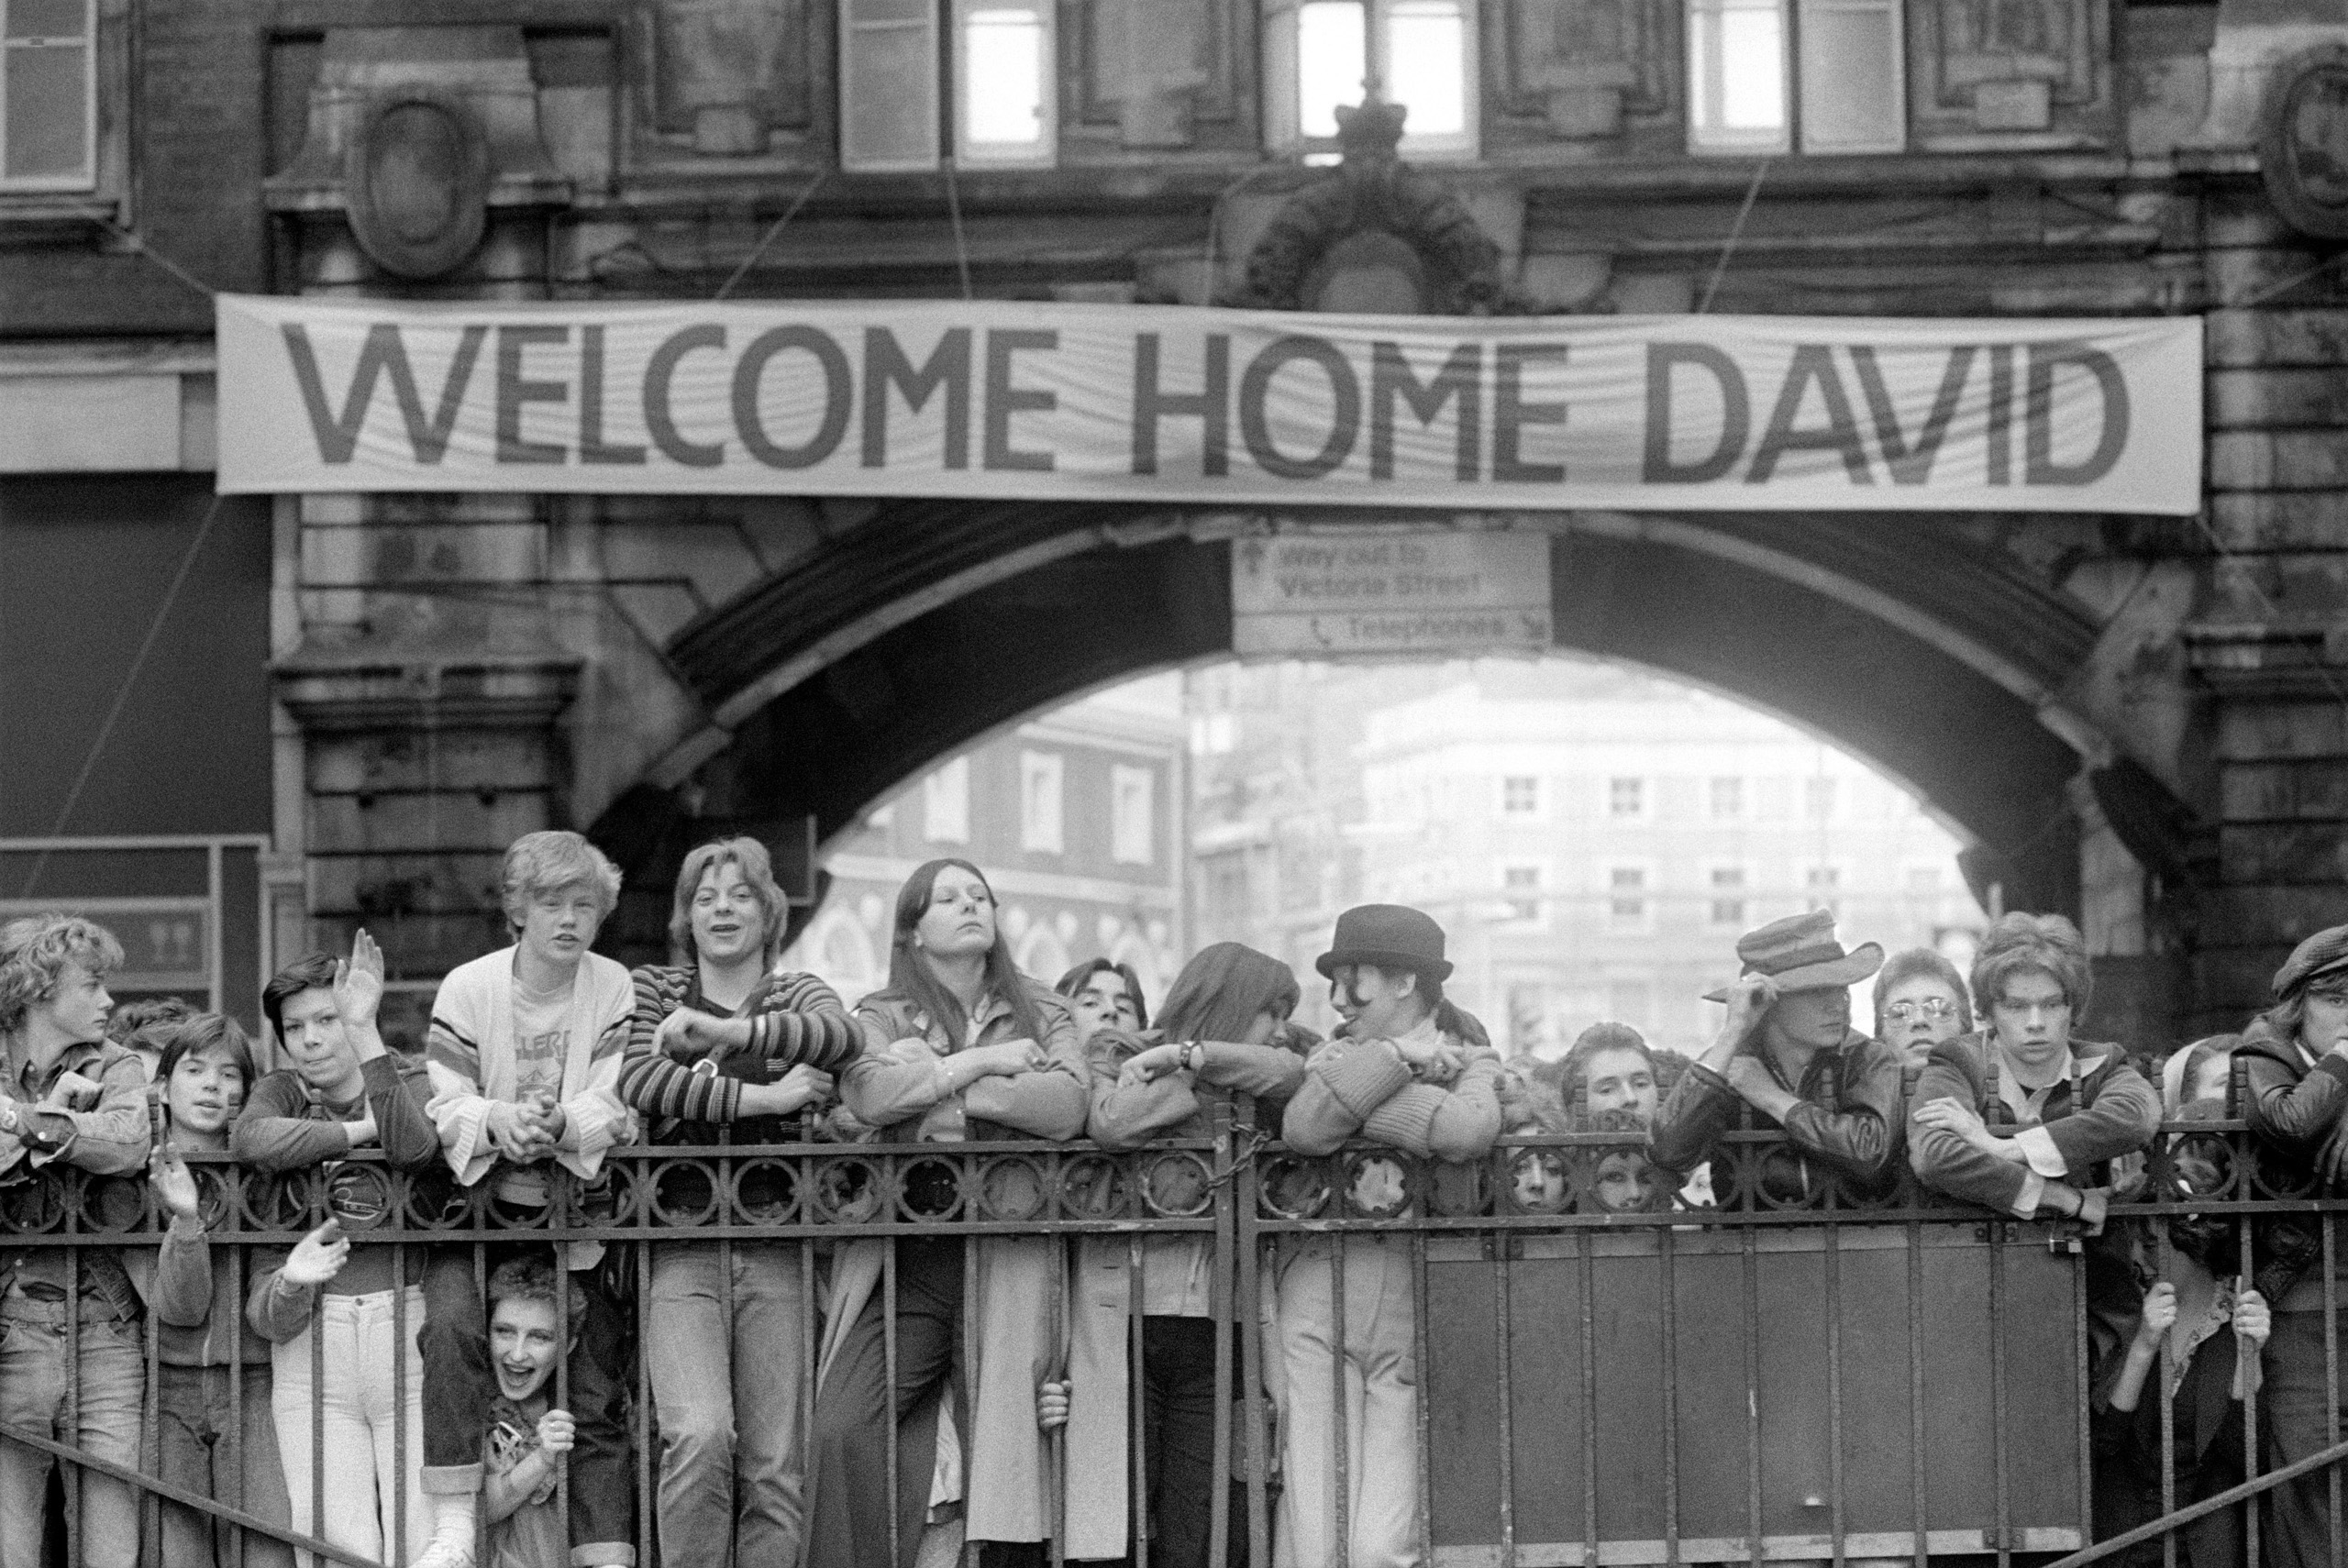 Hundreds of dedicated fans waited for hours anticipating Bowie's arrival into Victoria Station, London, U.K.